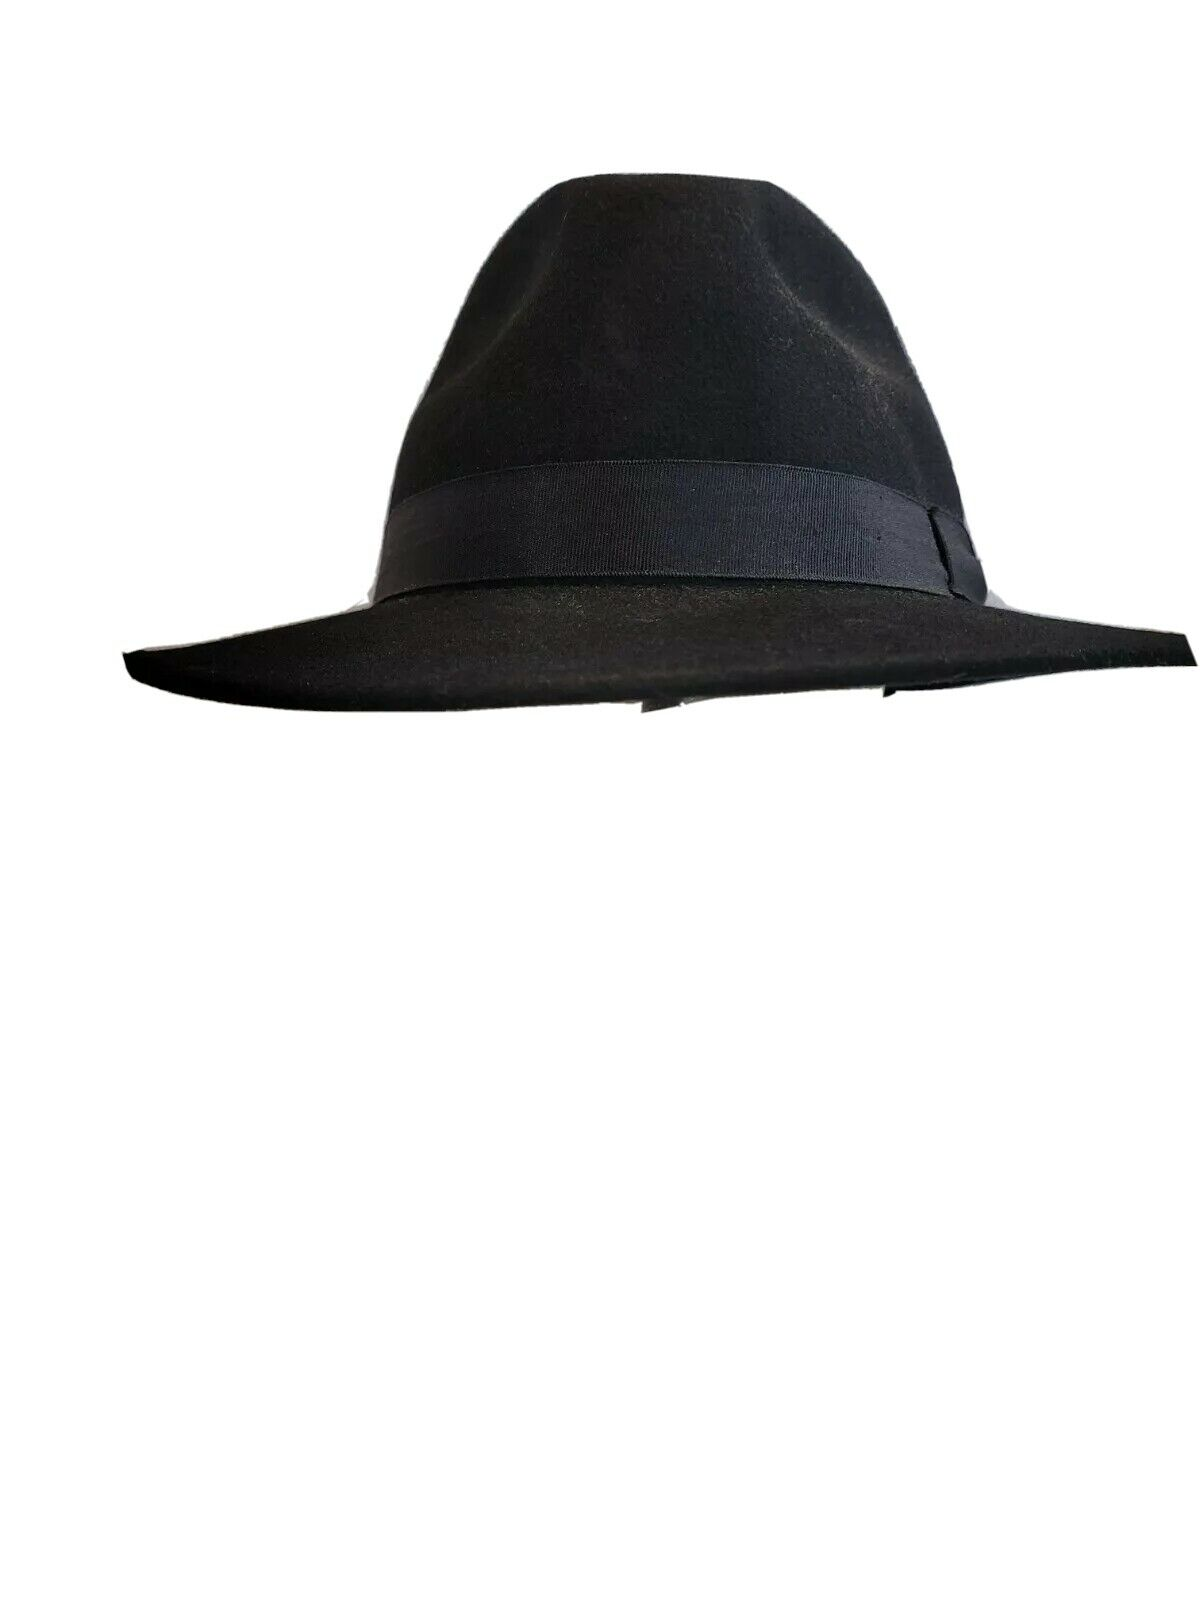 VTG Ideal Chic SIZE L 100% Black Fedora Wool Hat Made In The USA.